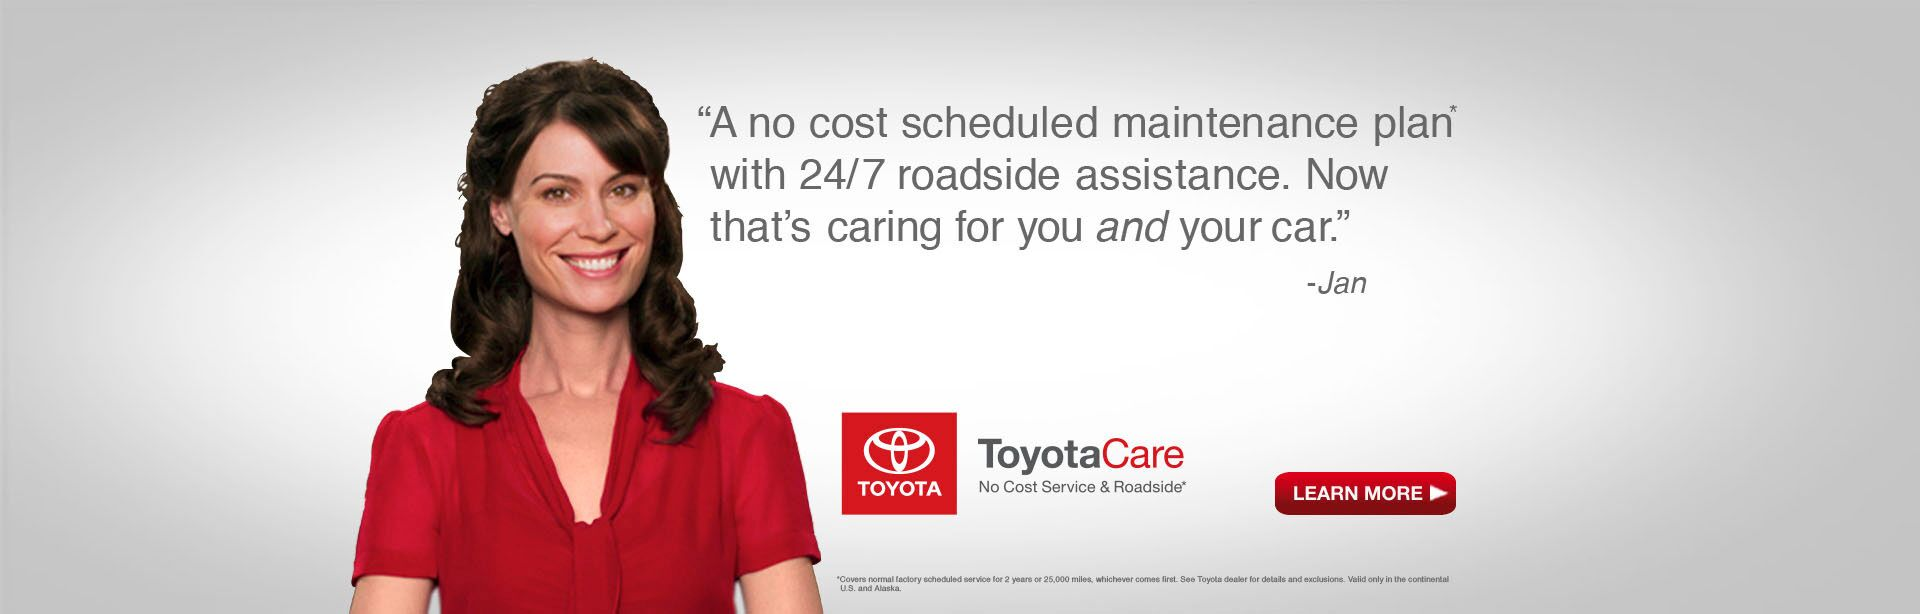 ToyotaCare at York's of Houlton Toyota